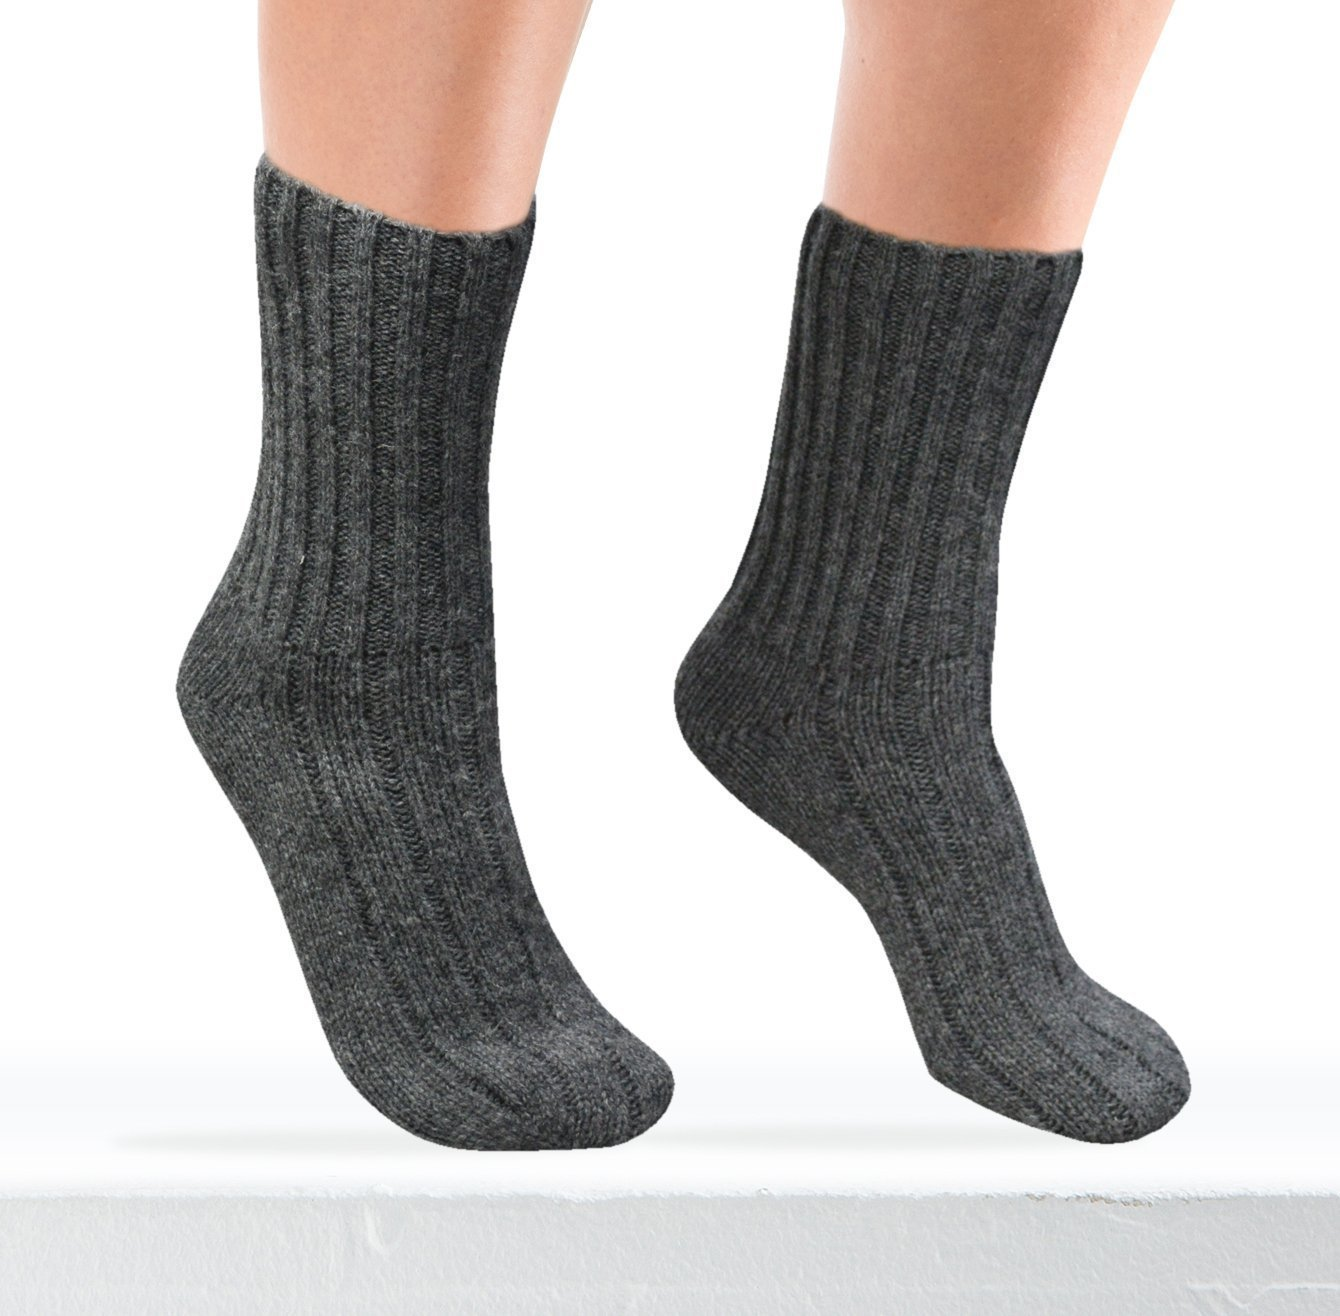 North Outdoor - Warm 100 % merino wool socks normal - Made in Finland - Weekendbee - sustainable sportswear